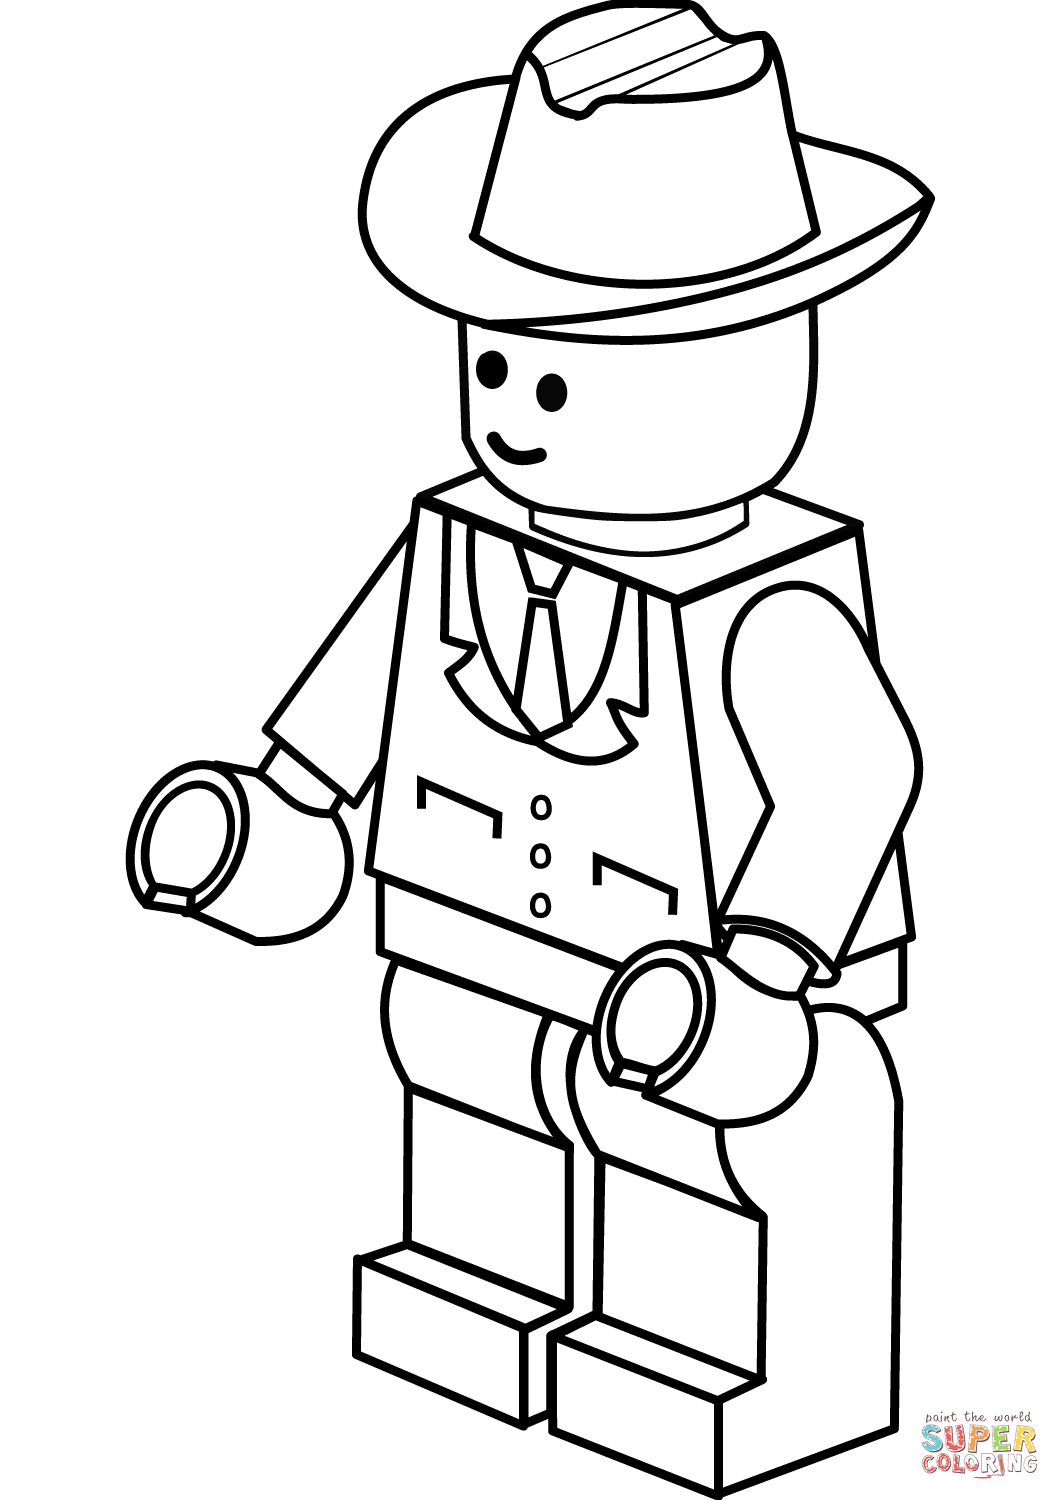 lego printable colouring pages lego batman coloring pages best coloring pages for kids colouring pages printable lego